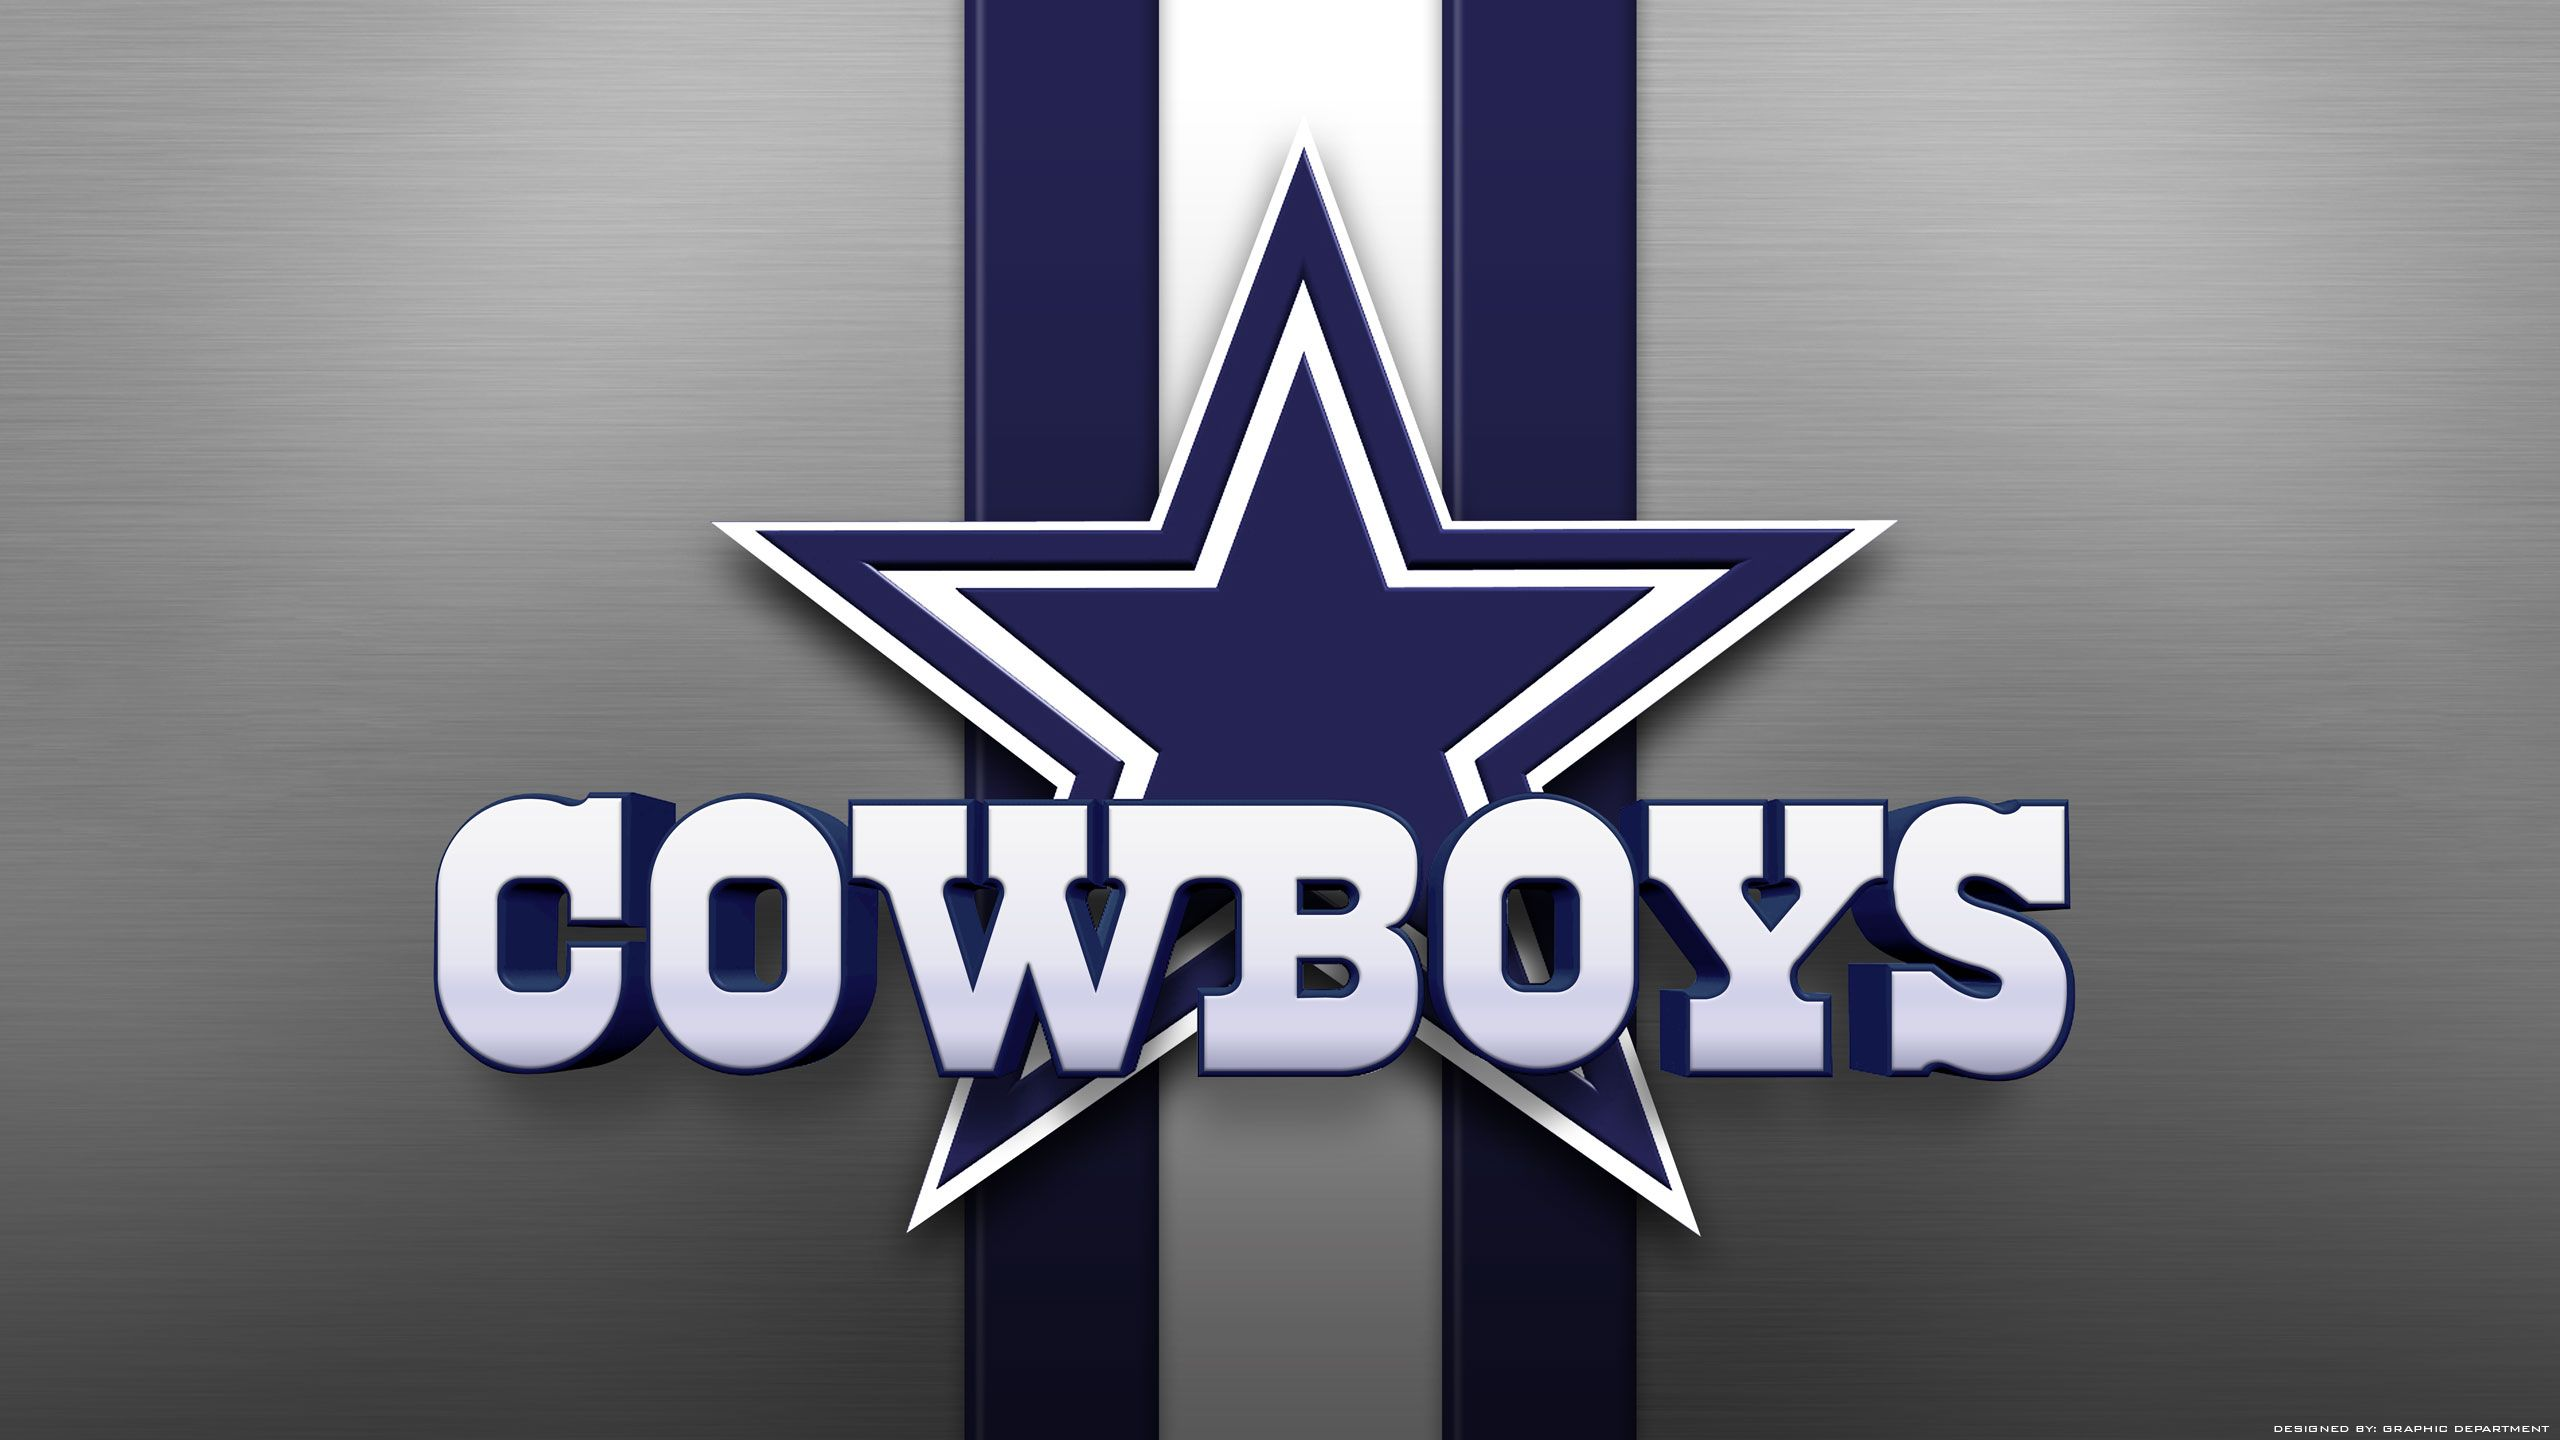 Dallas Cowboys High Resolution Wallpaper